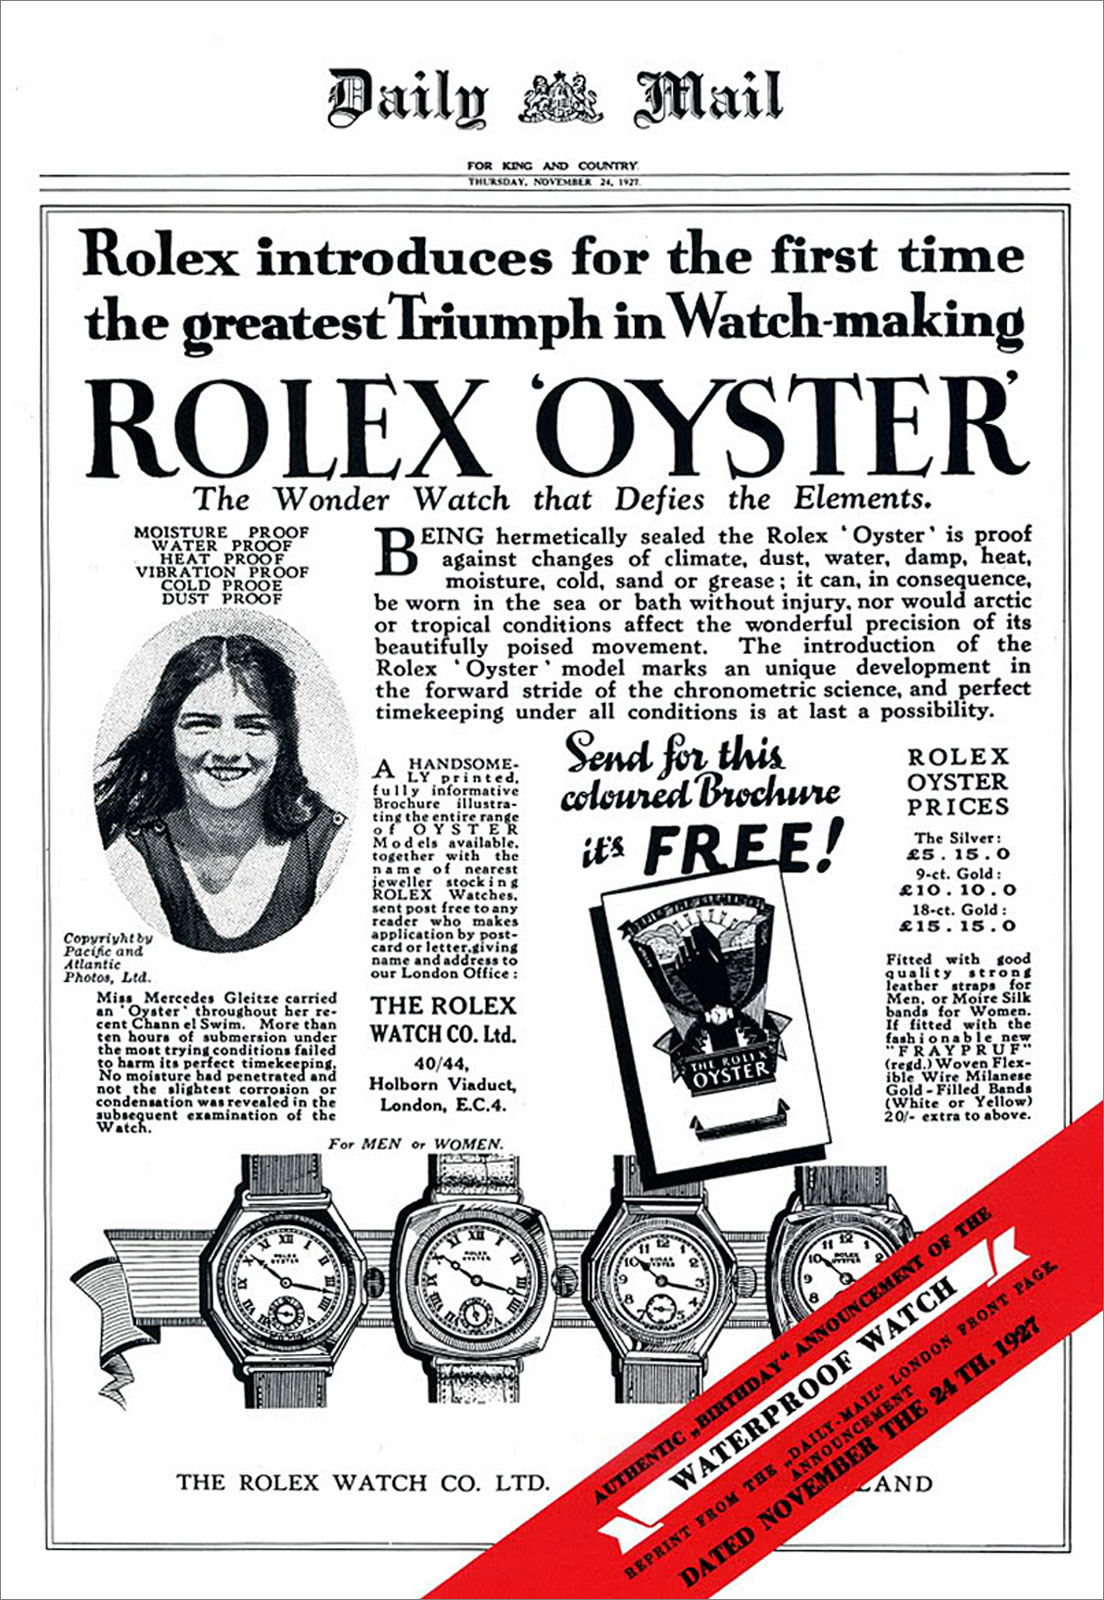 Rolex-Oyster-Advertorial-in-Daily-mail